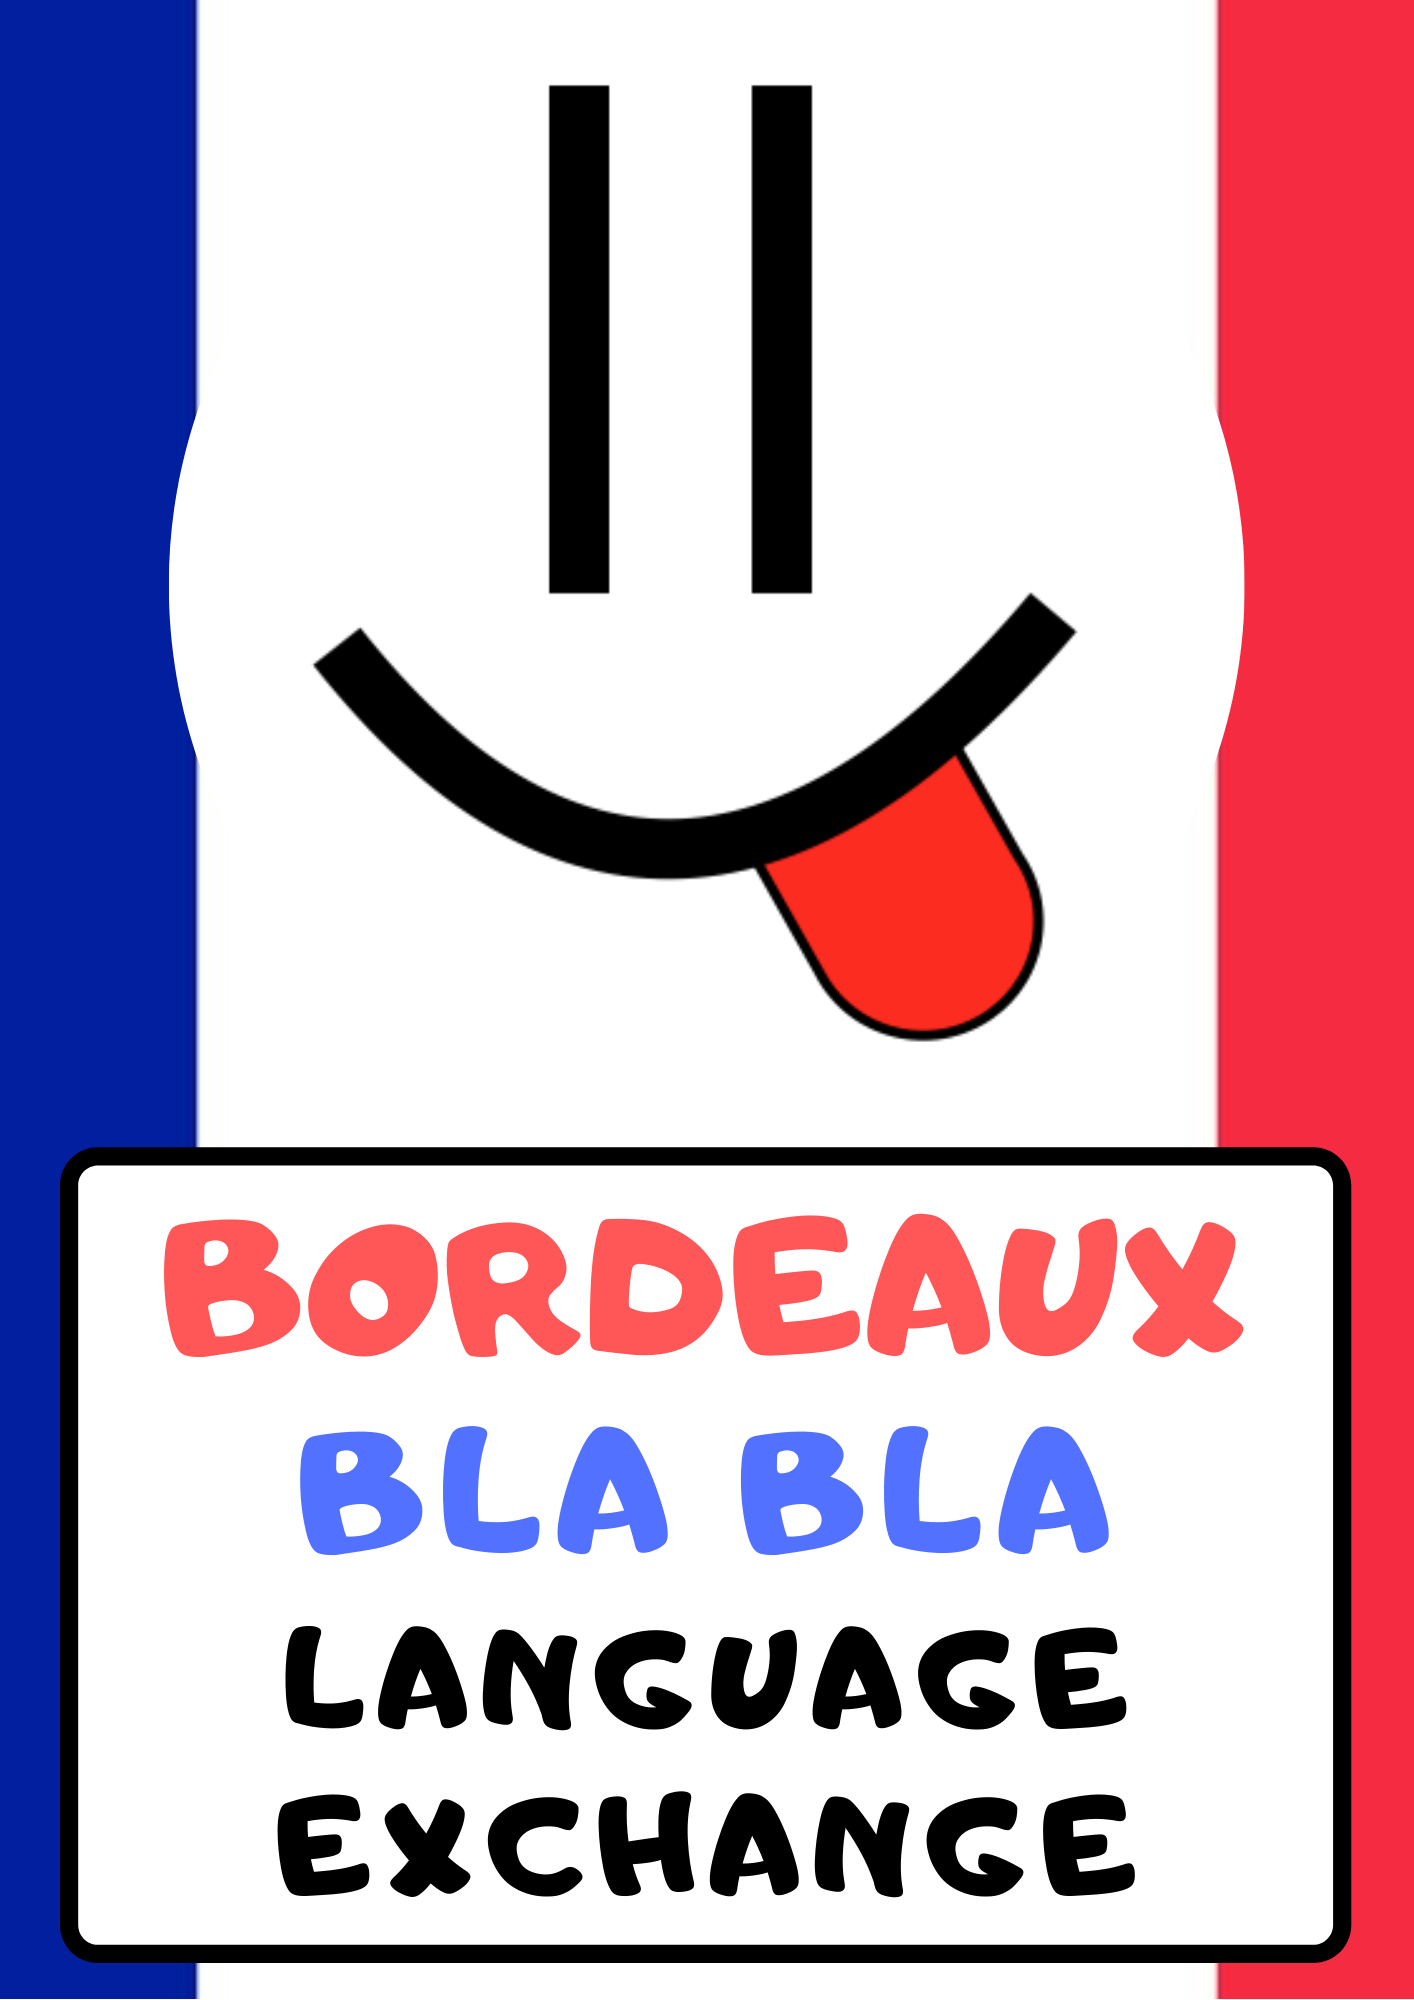 Bordeaux BlaBla Language Exchange